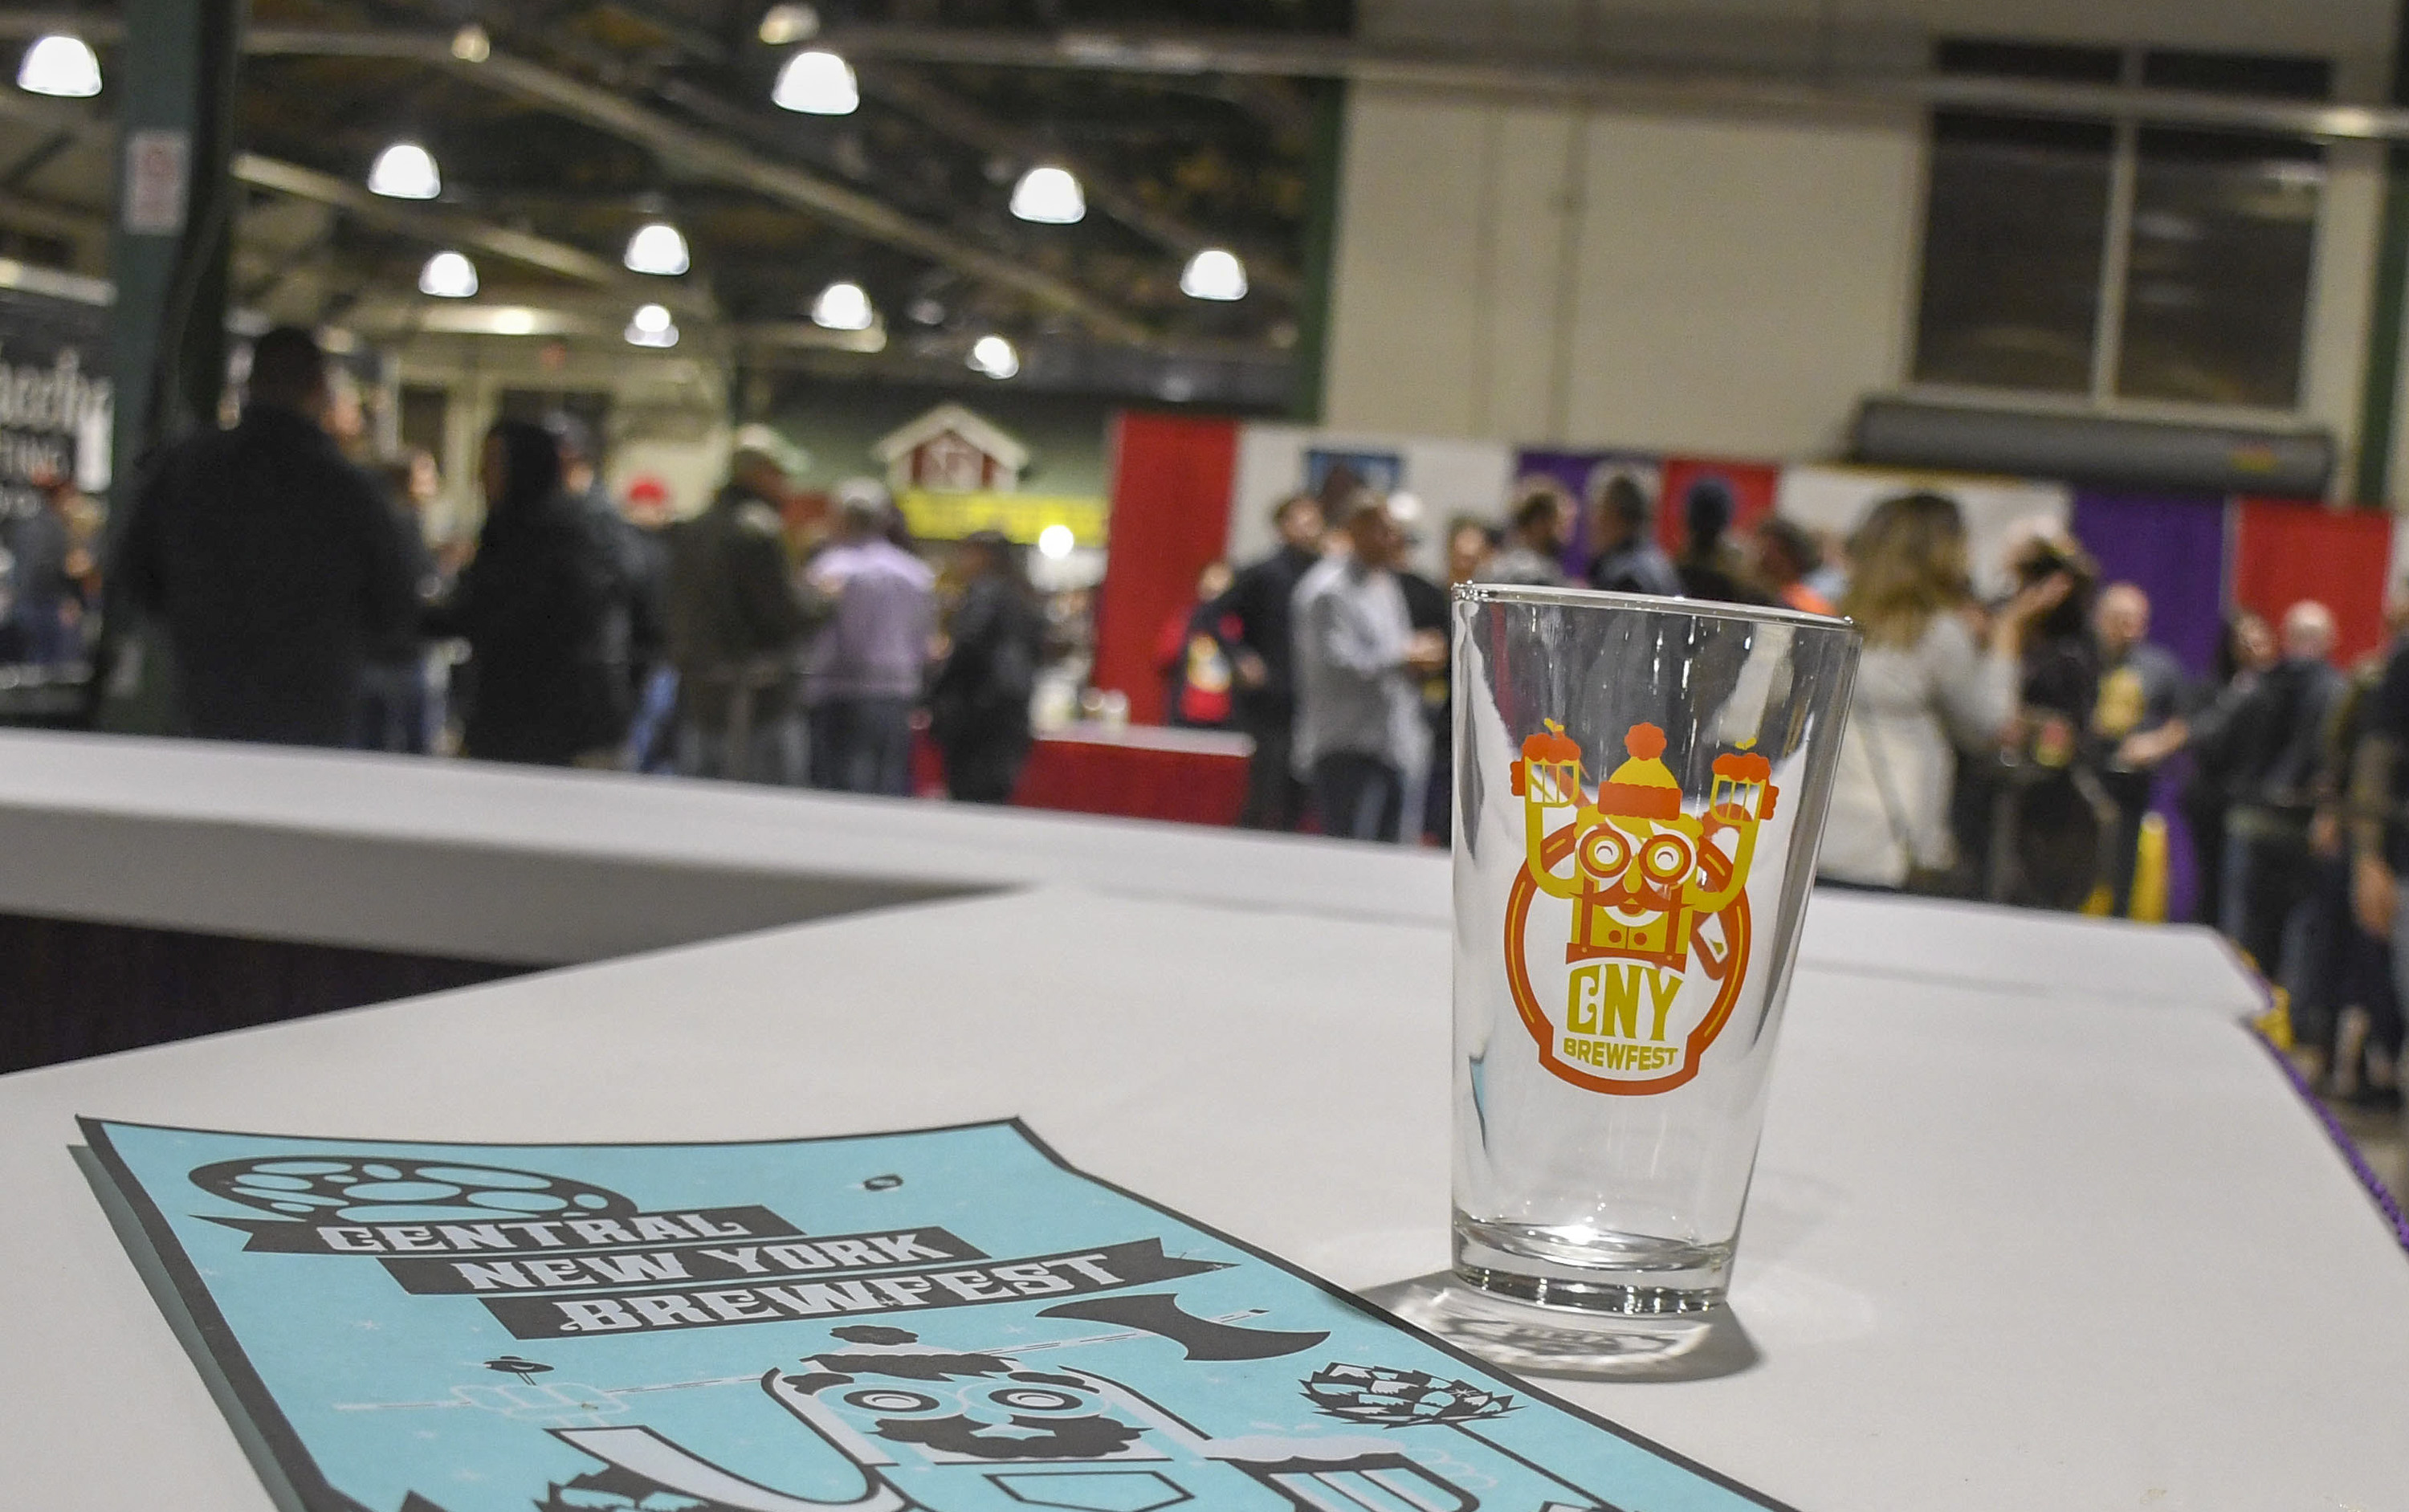 The designer beer glass and poster for the 24th Annual Central New York Brewfest.